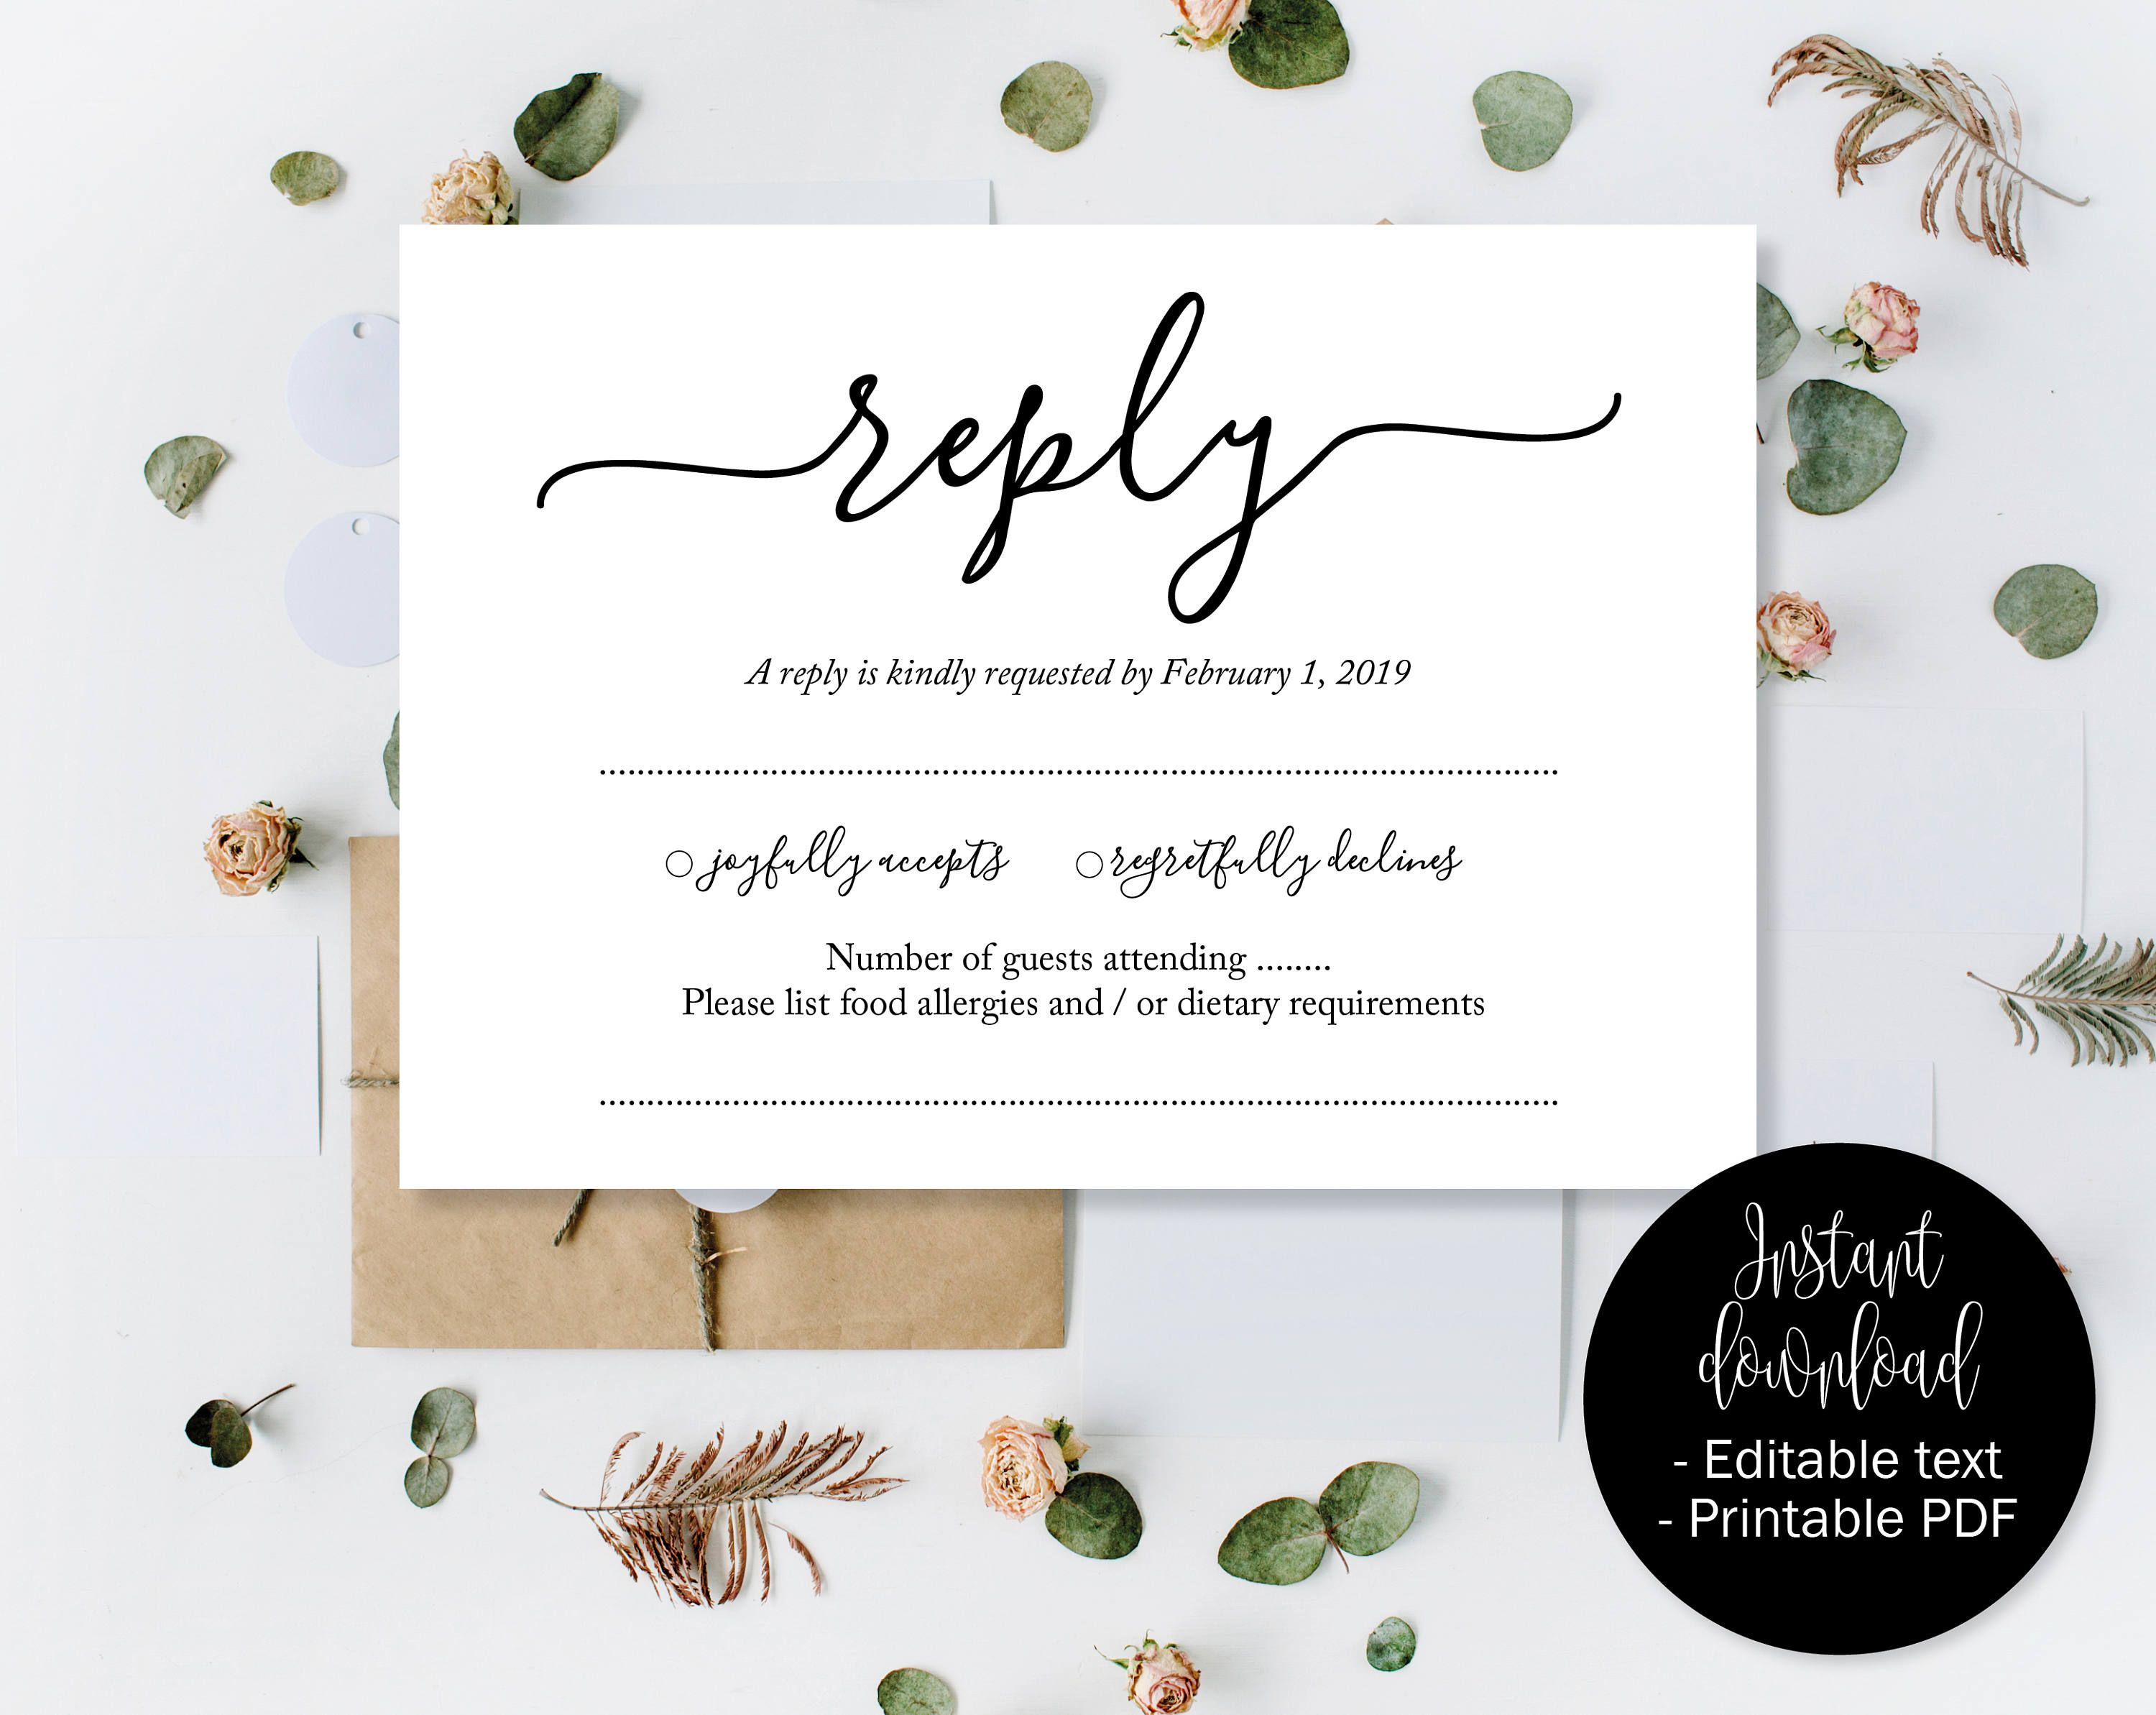 Wedding Rsvp Template.Wedding Rsvp Cards Wedding Reply Attendance Acceptance Cards Rsvp